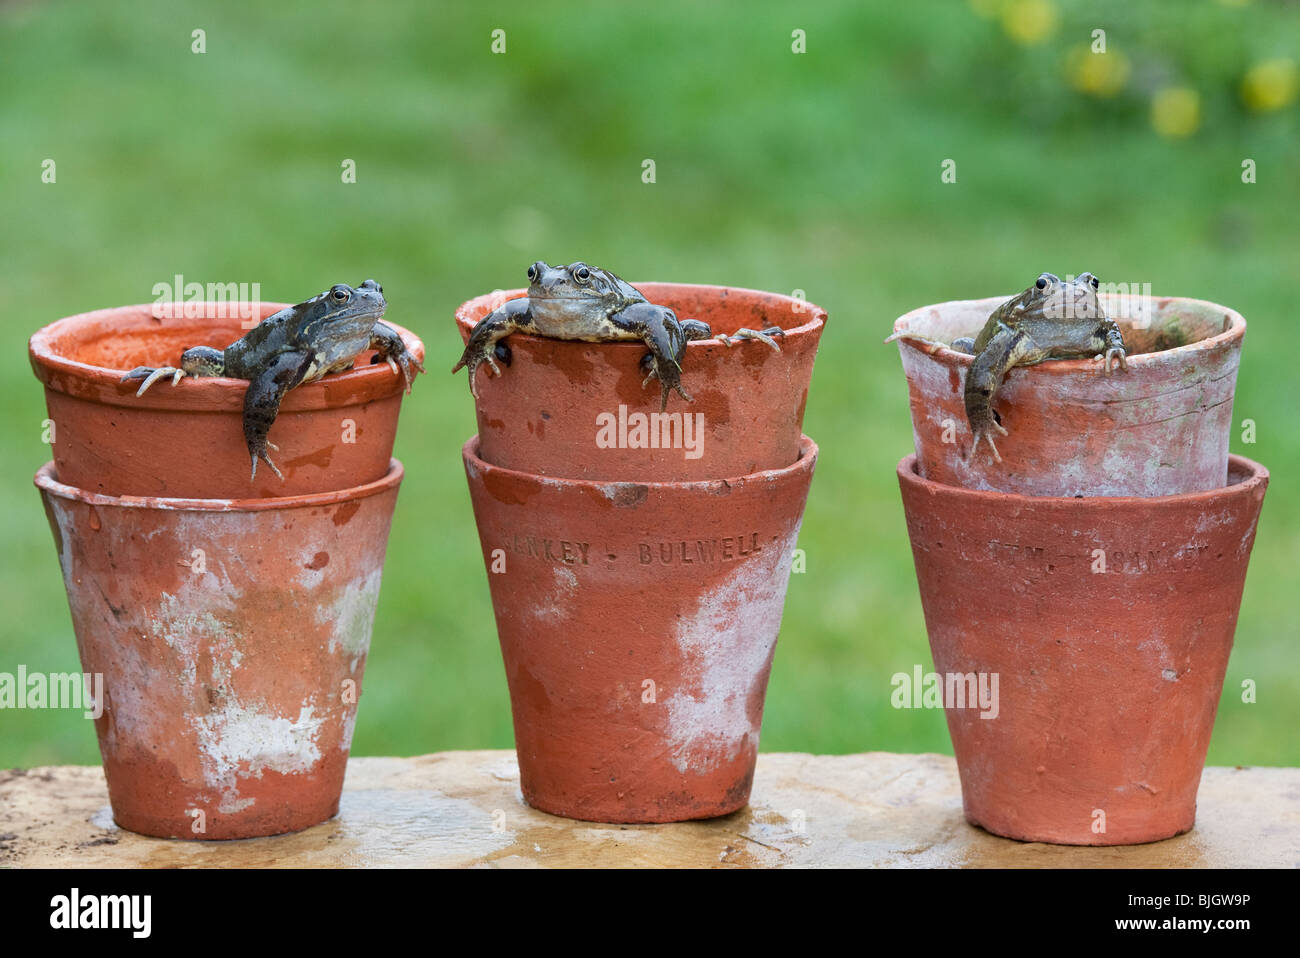 Common garden frogs, Rana Temporaria, appearing out of terracotta flower pots. UK - Stock Image